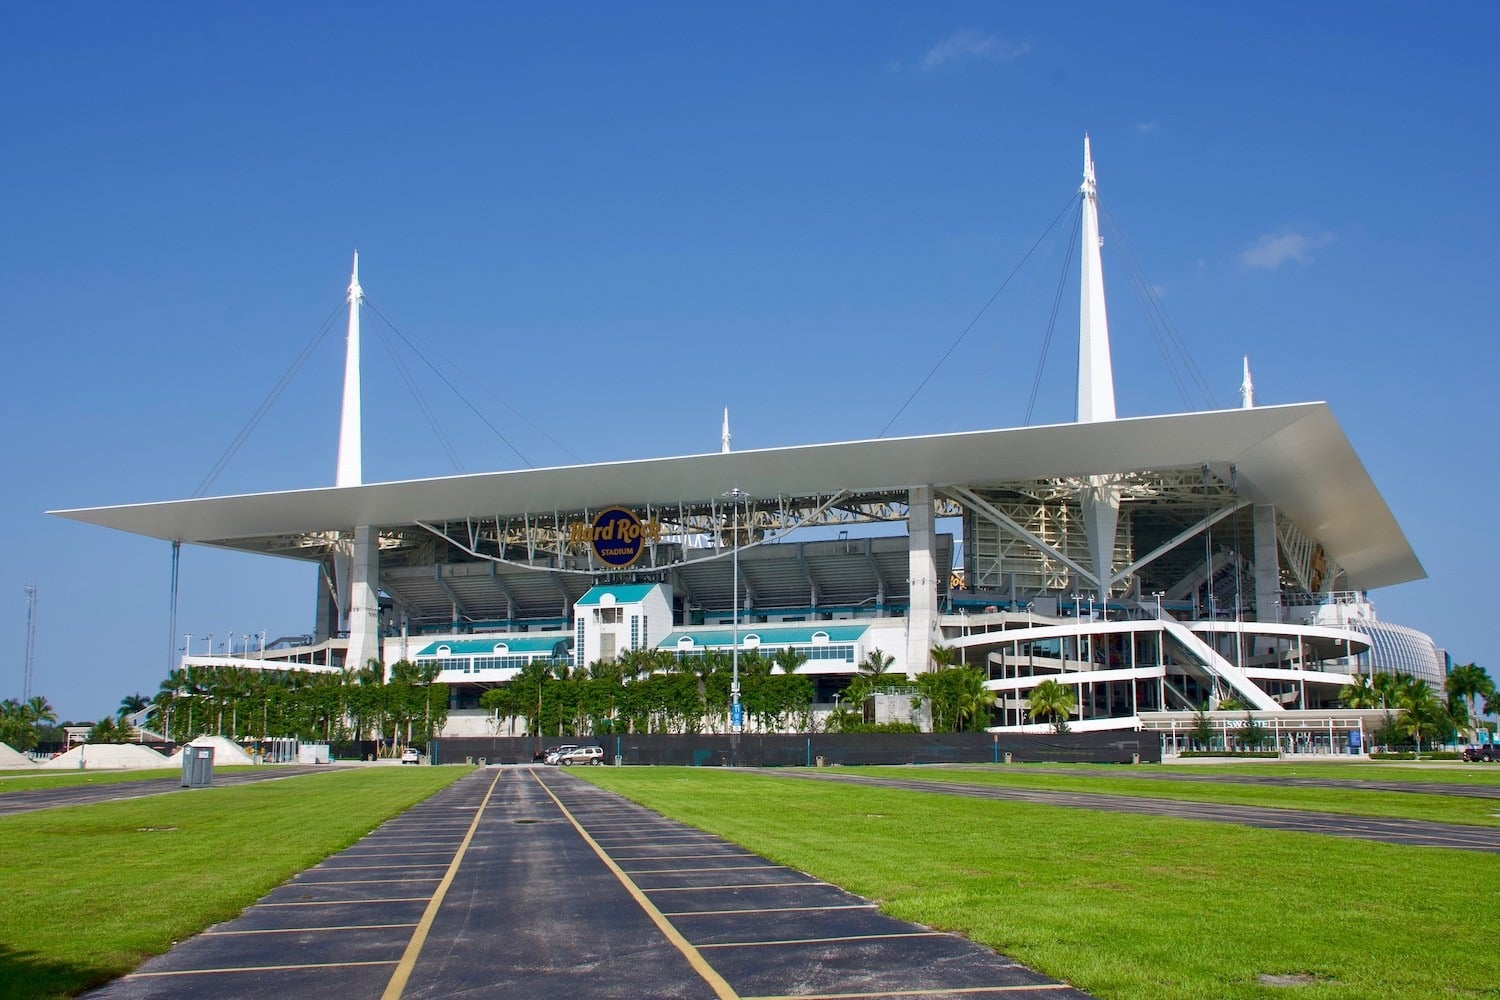 Hard Rock Stadium, Home Of The Miami Dolphins. Photo Credit: Valerie | Under Creative Commons License